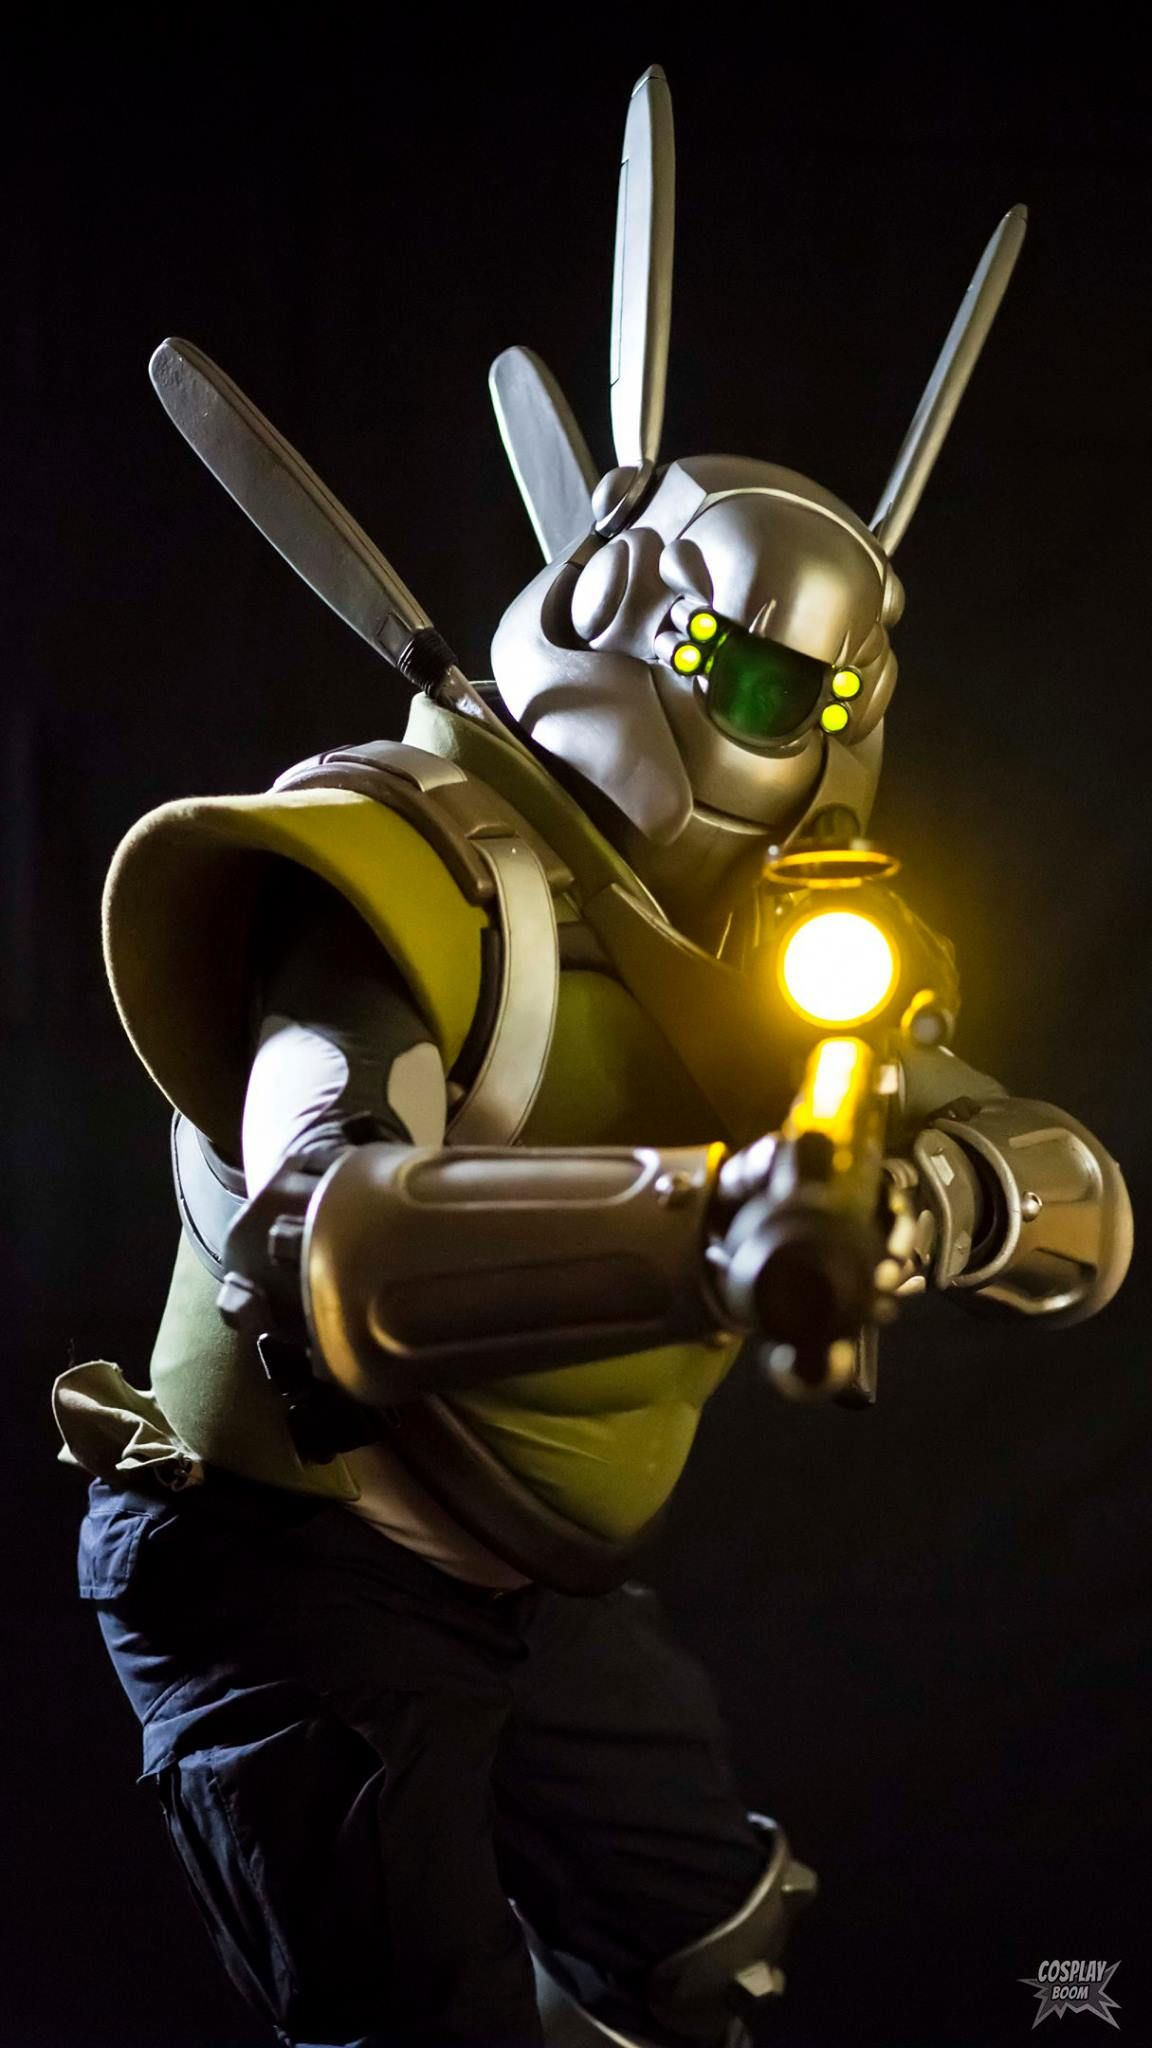 Briareos Costume Prop And Helmet Build Write Up Best Cosplay Cosplay Masamune Shirow